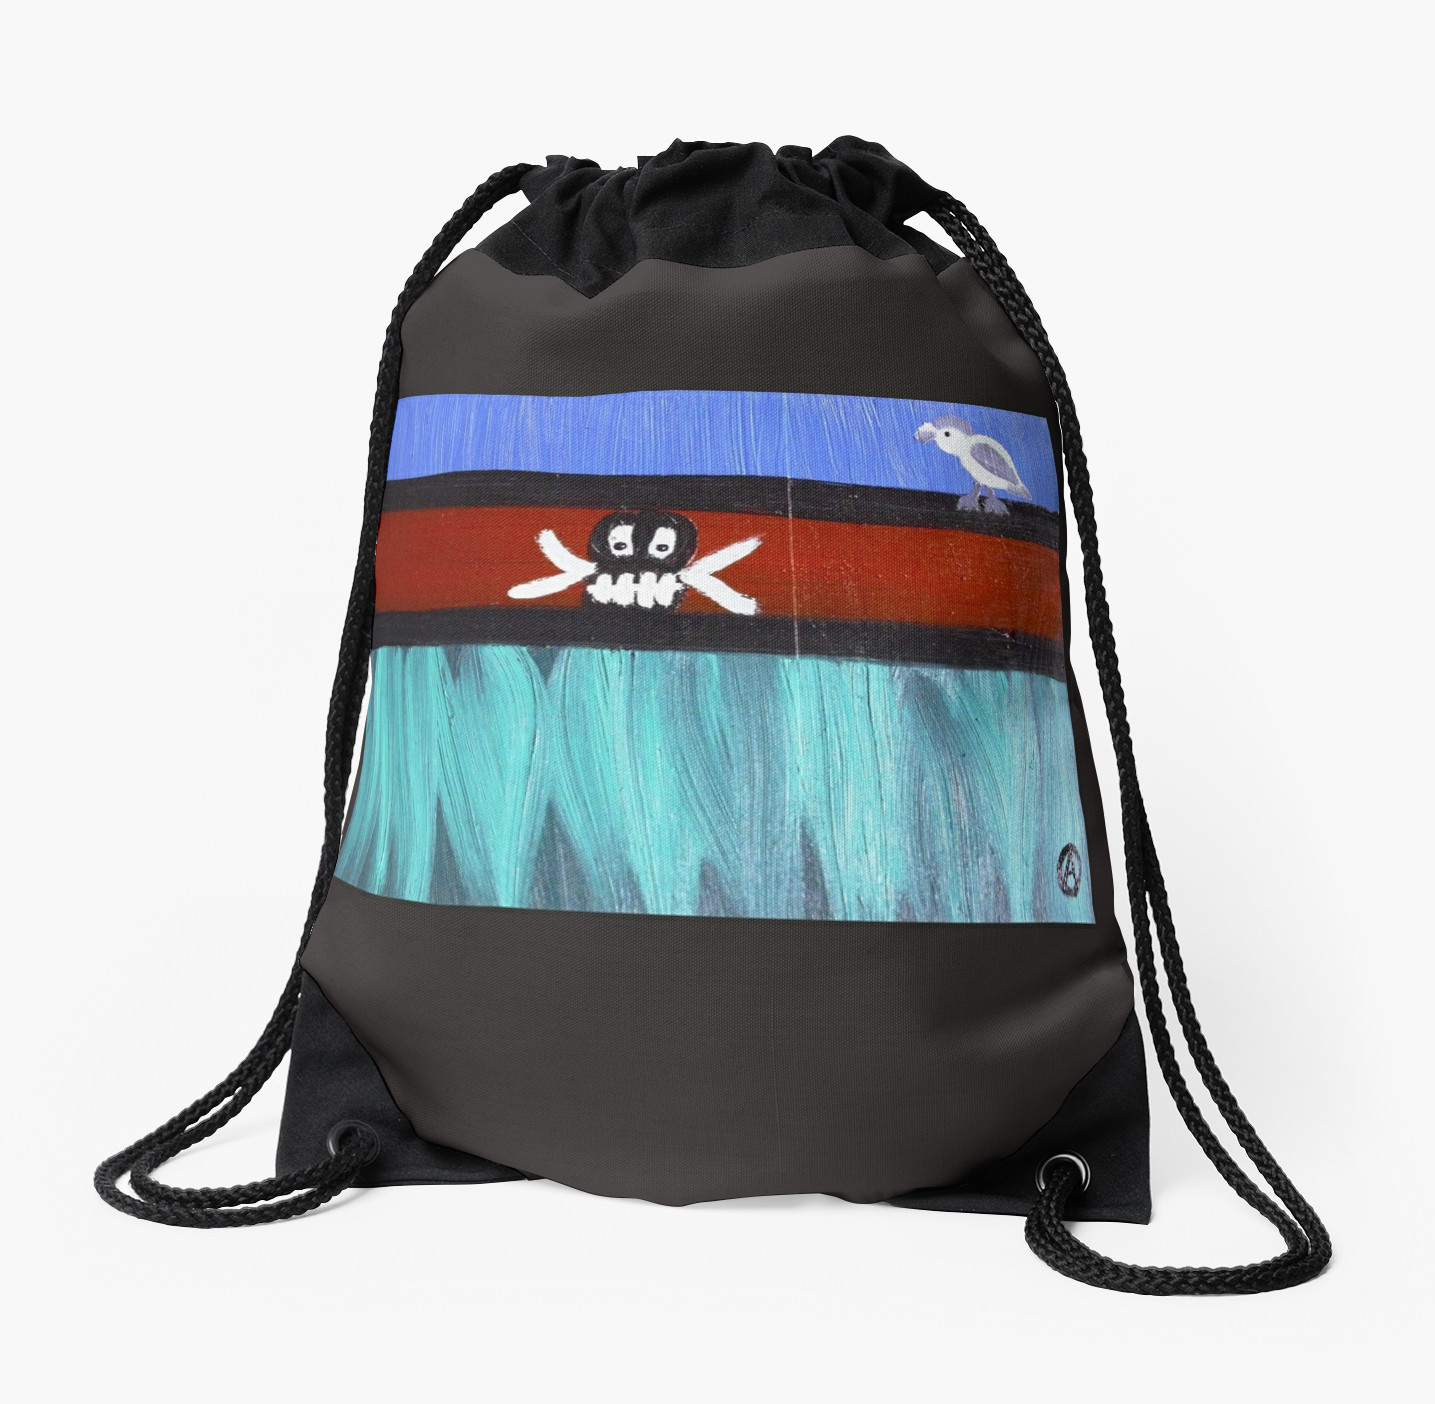 drawstring_bag,x1404-bg,f8f8f8.u2